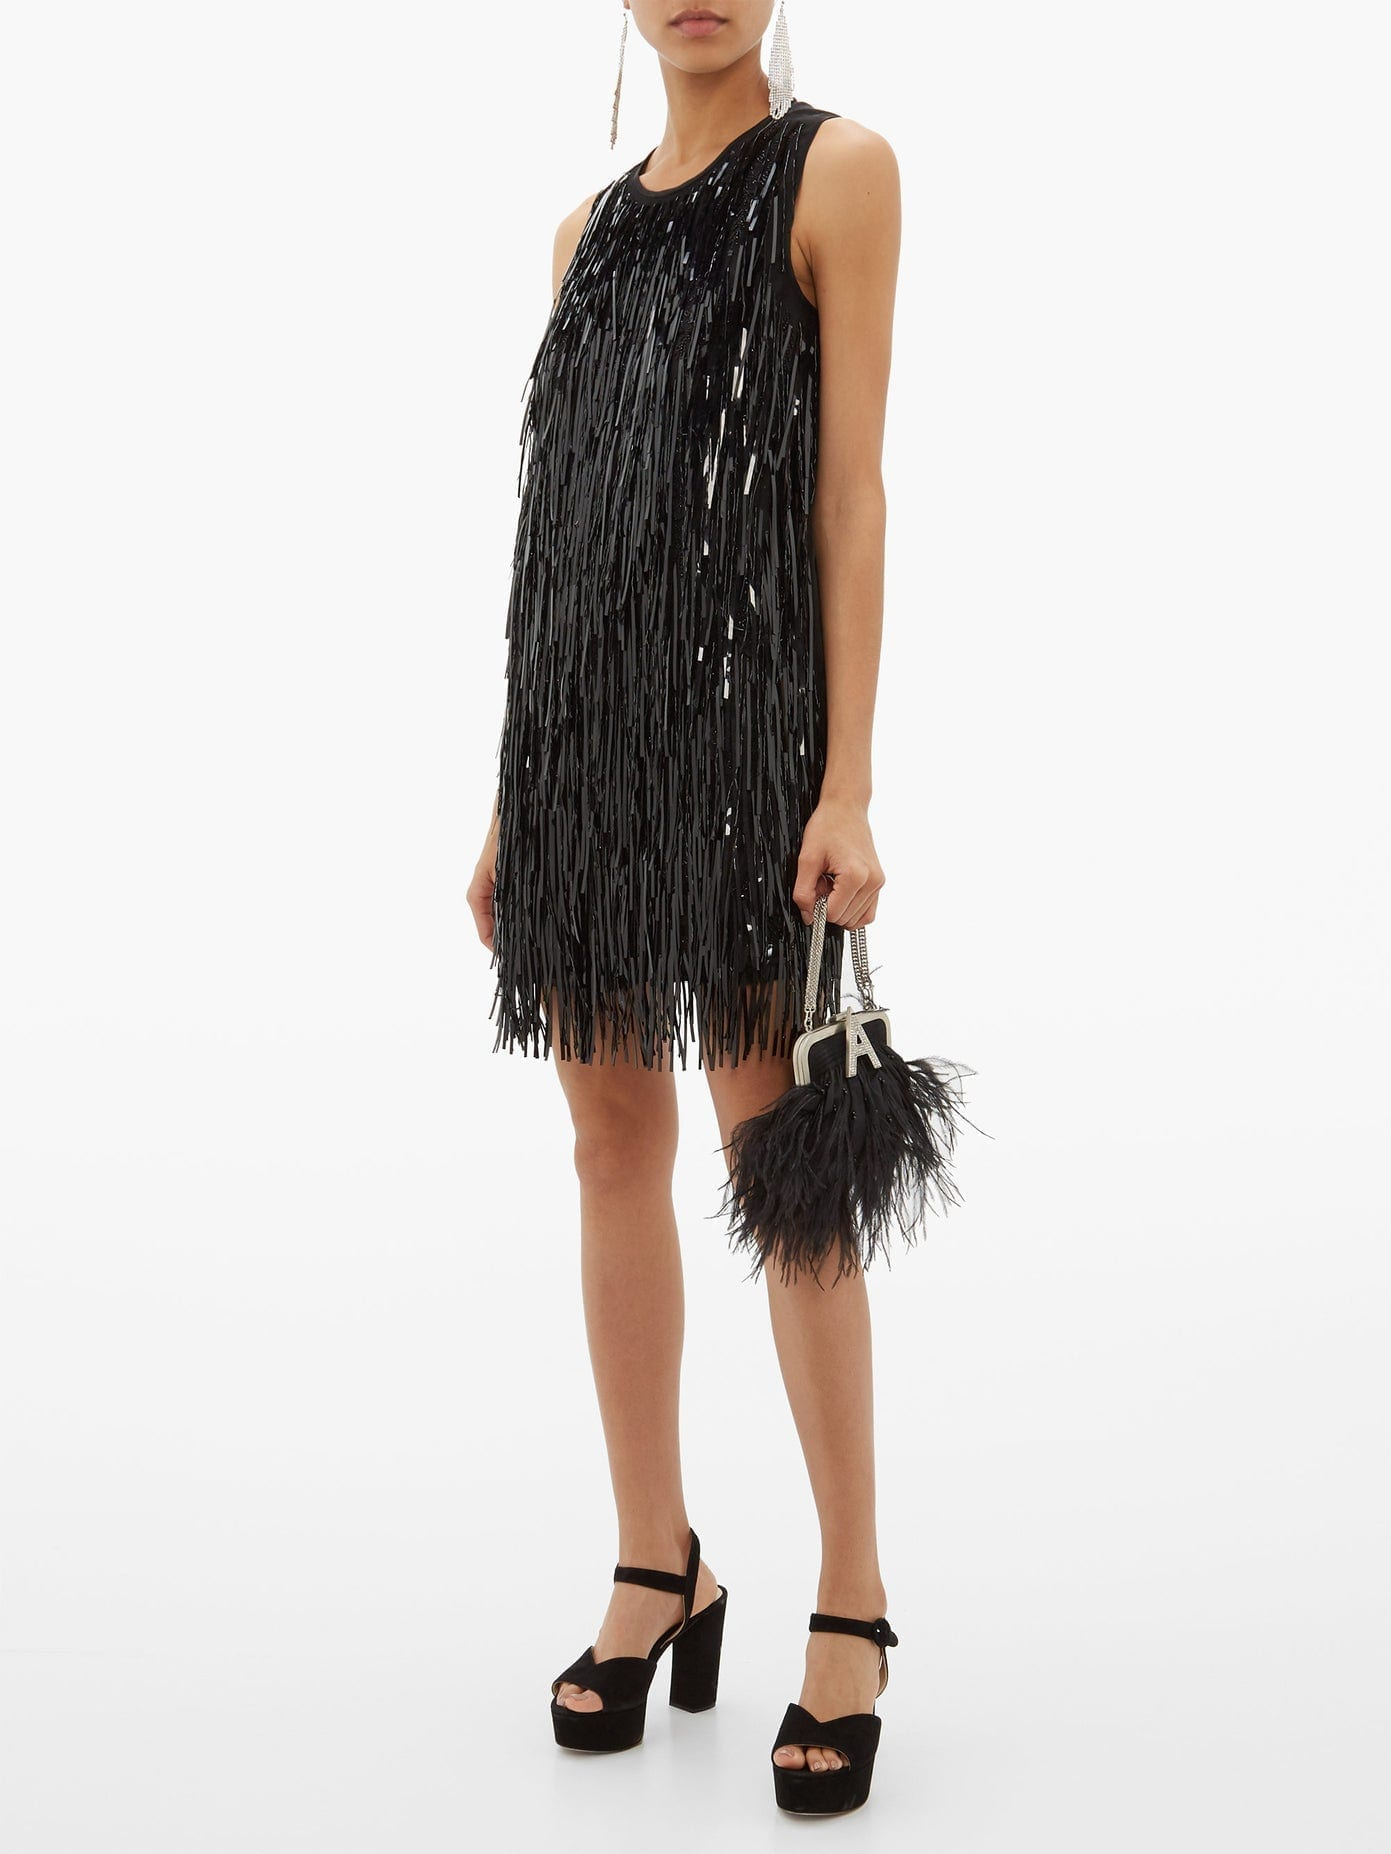 NO. 21 Sequin-tassel Satin Shift Dress